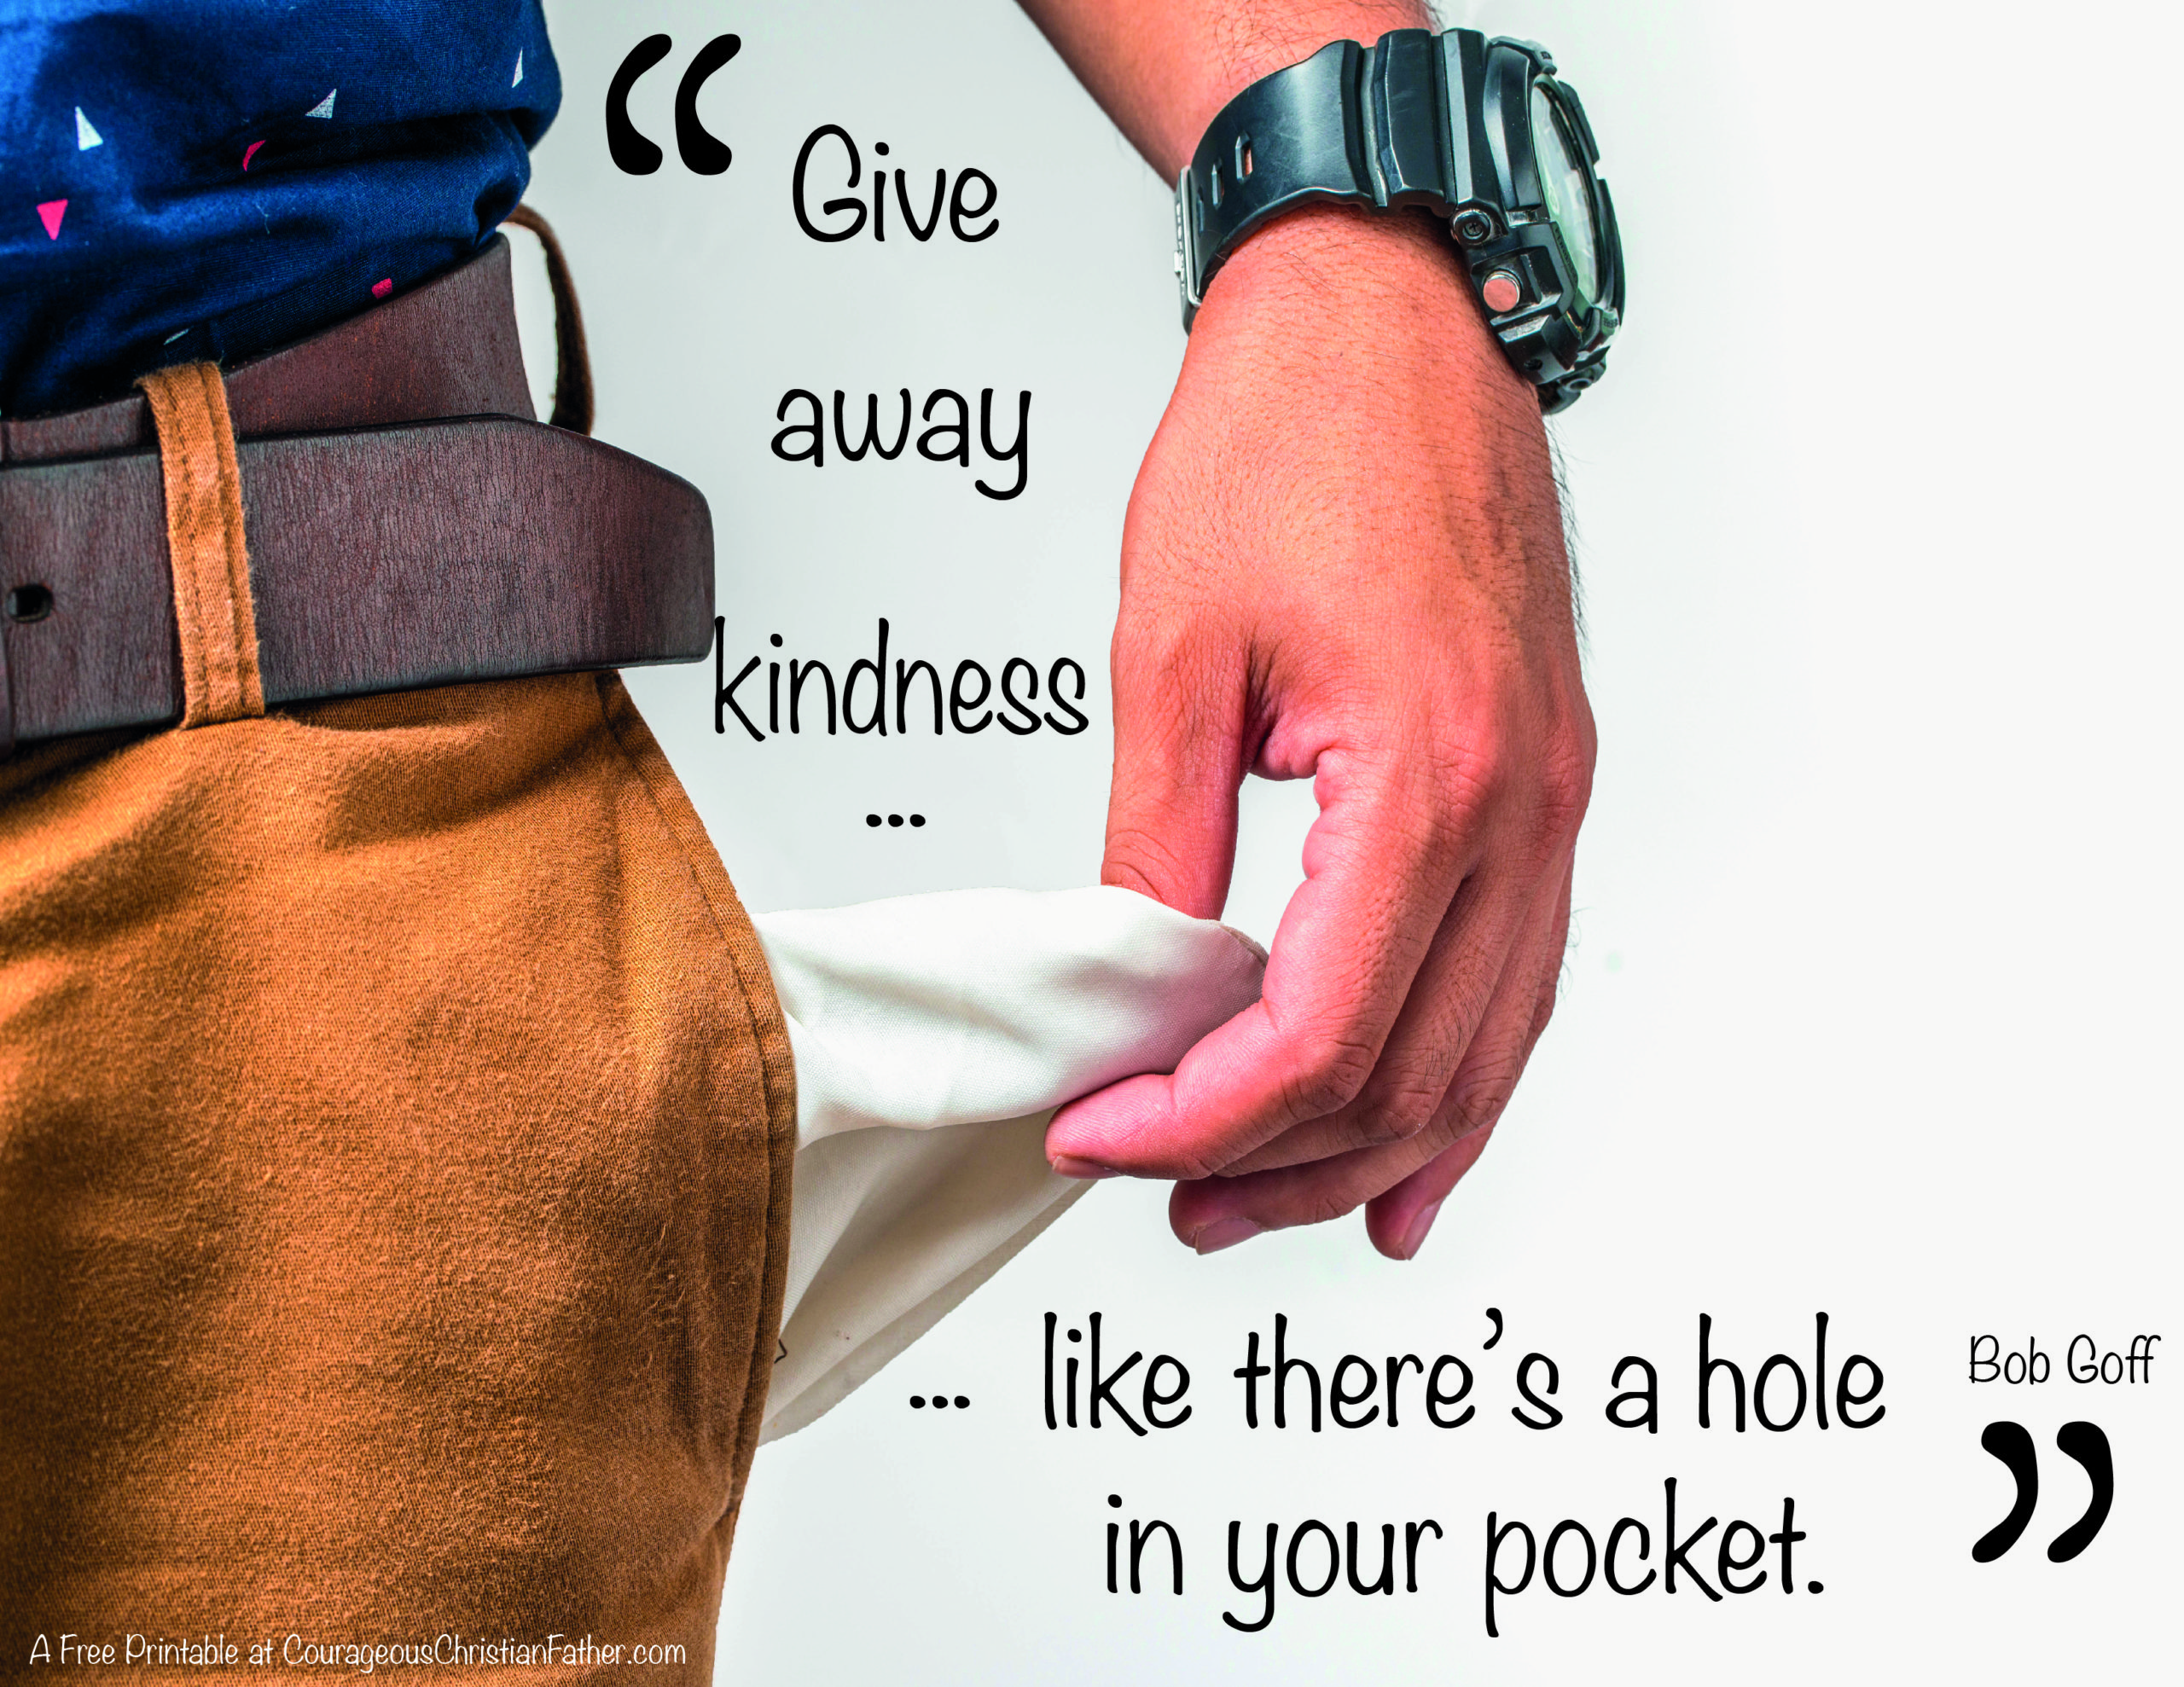 Give away kindness like there's a hole in your pocket 